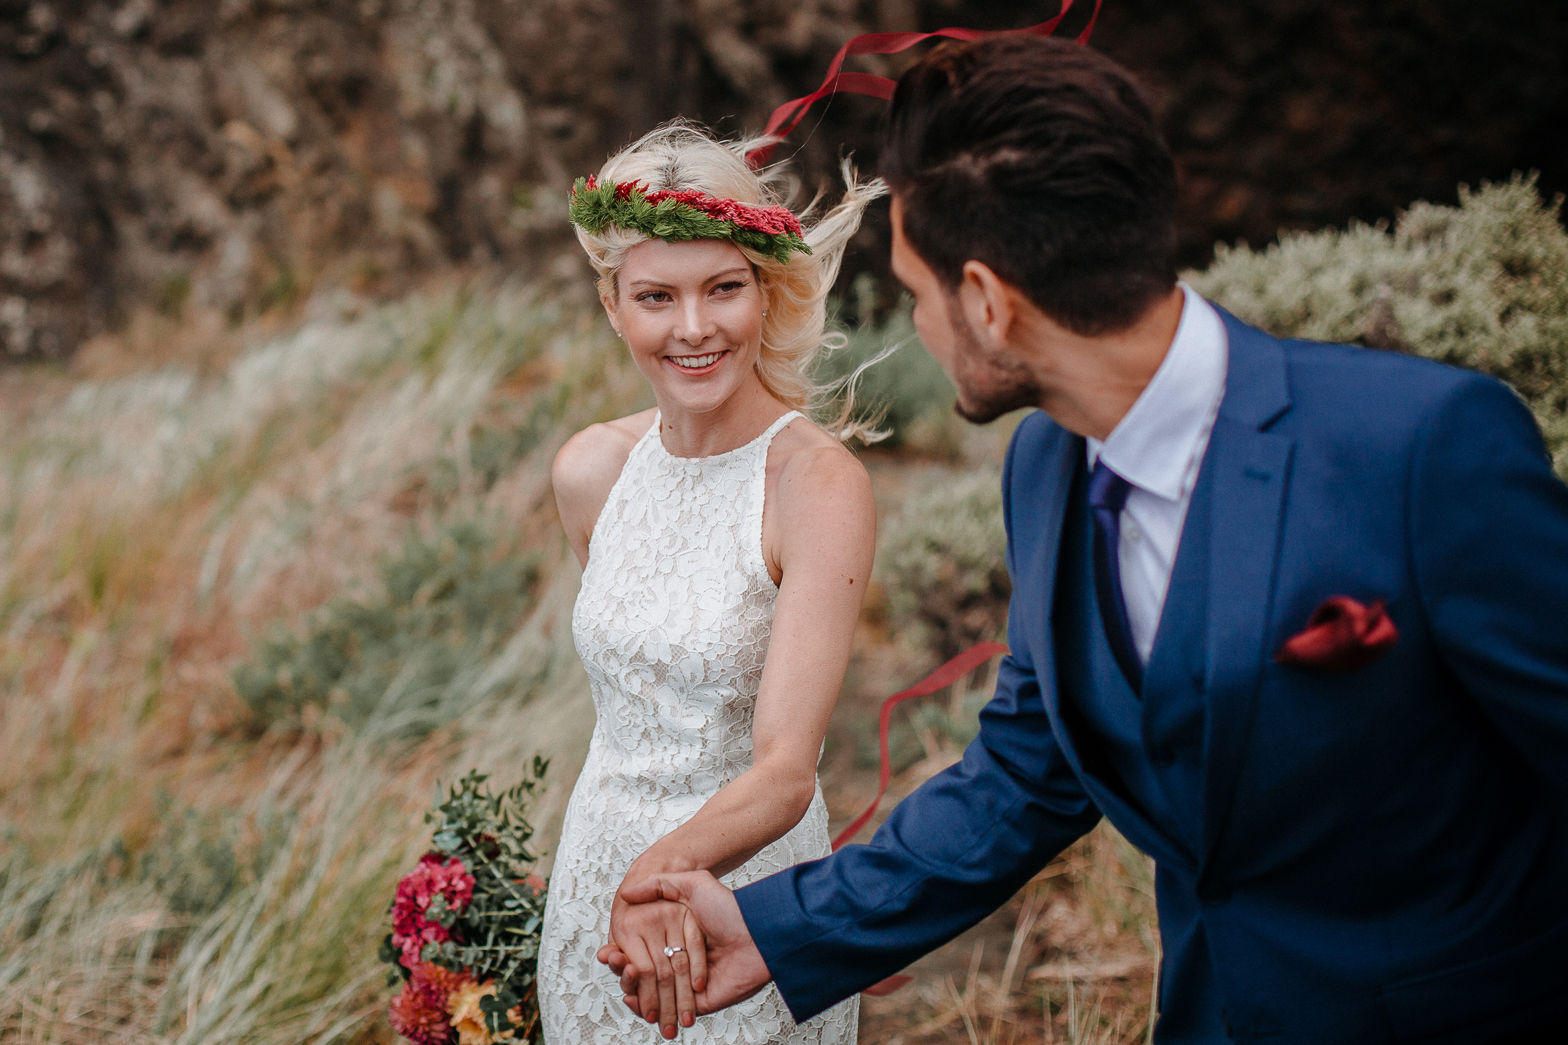 Top 10 Tips For A Stress Free Wedding - To get you on your way to namaste